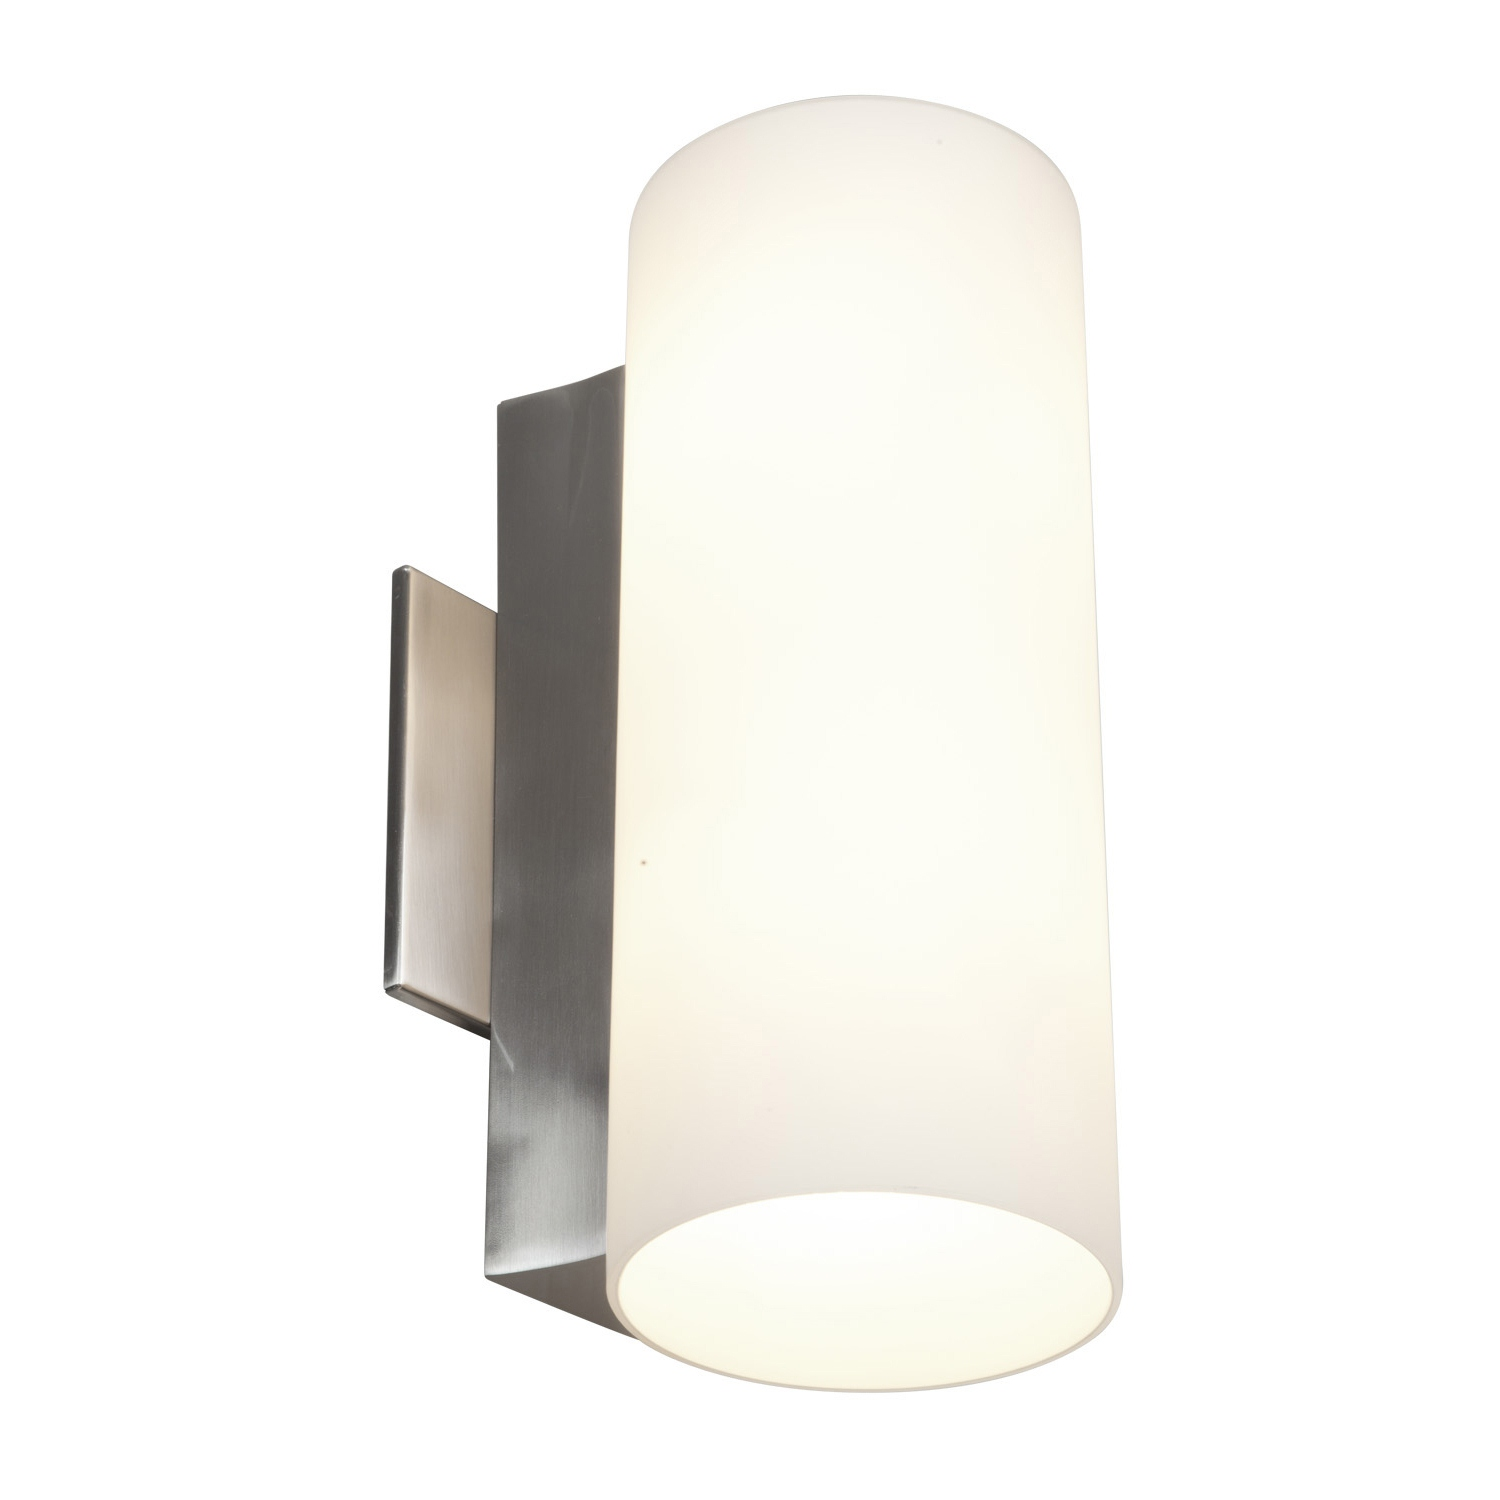 Add Beauty to Your Home with 2 light wall sconces